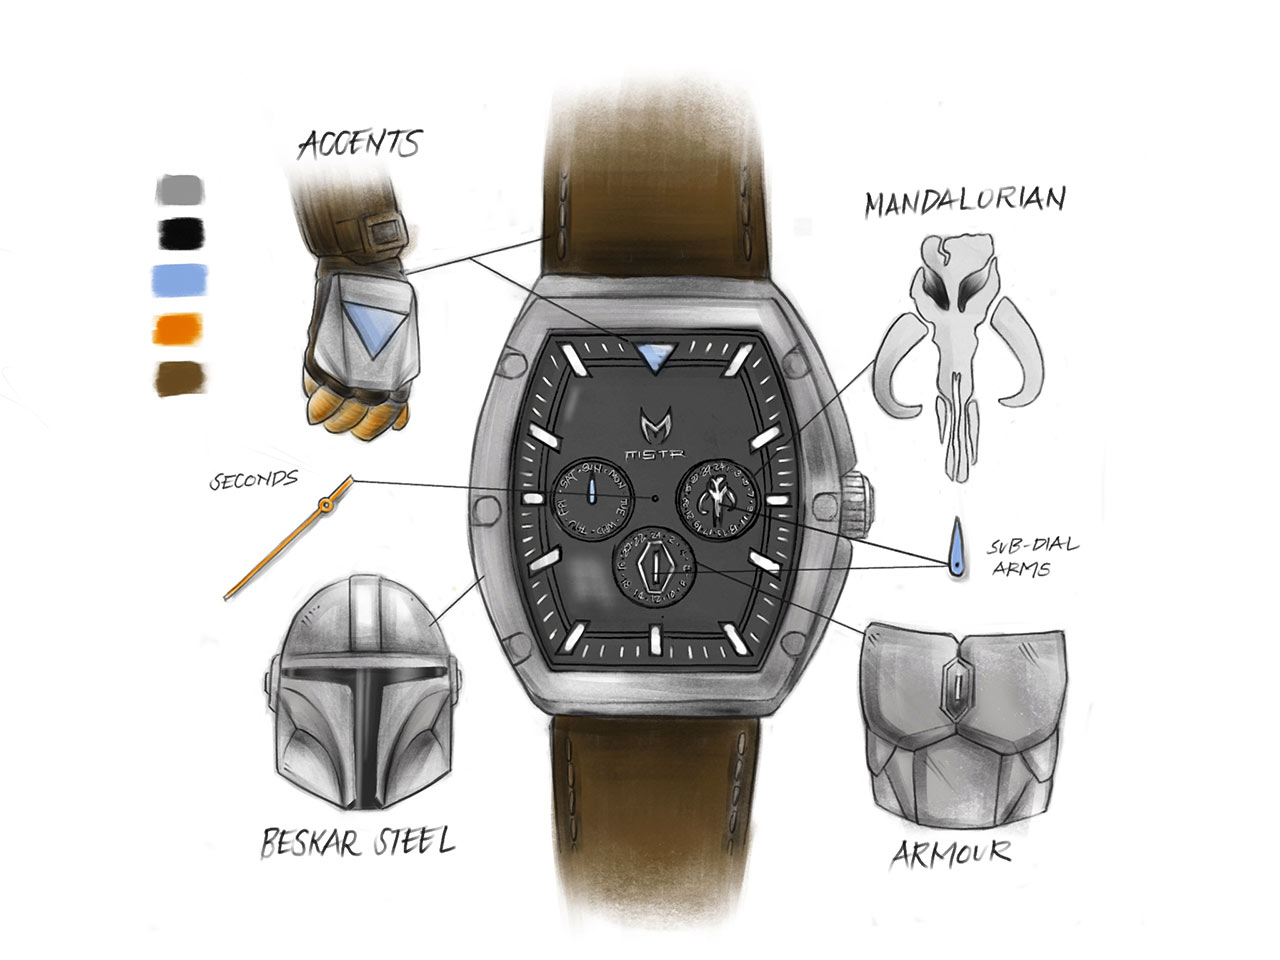 Star Wars Meister The Mandalorian inspired watch concept art